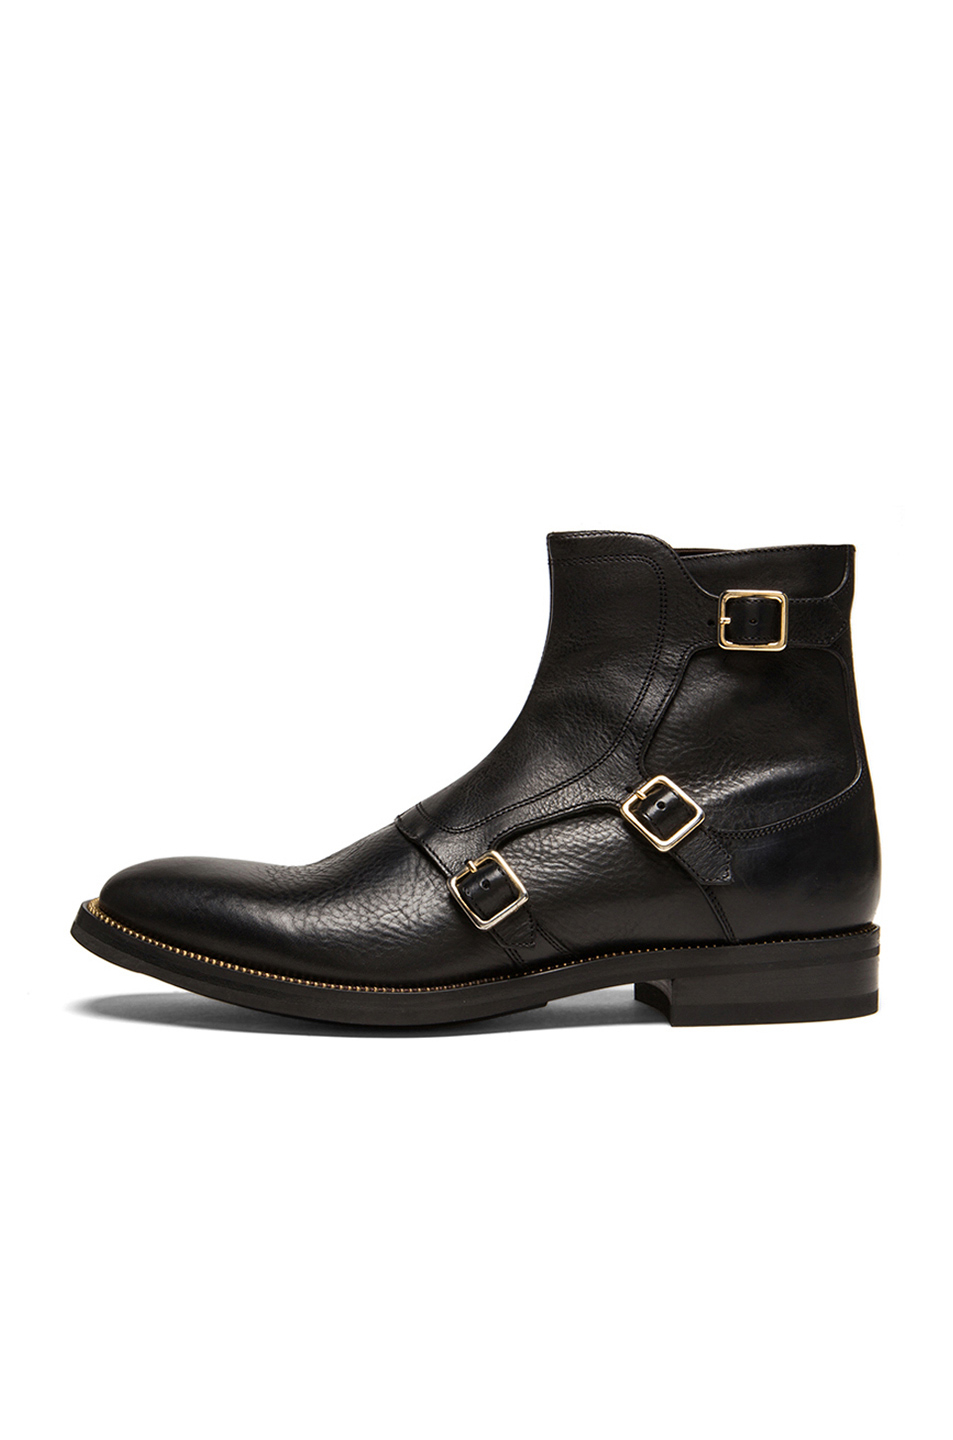 mcqueen s three buckle leather boots in